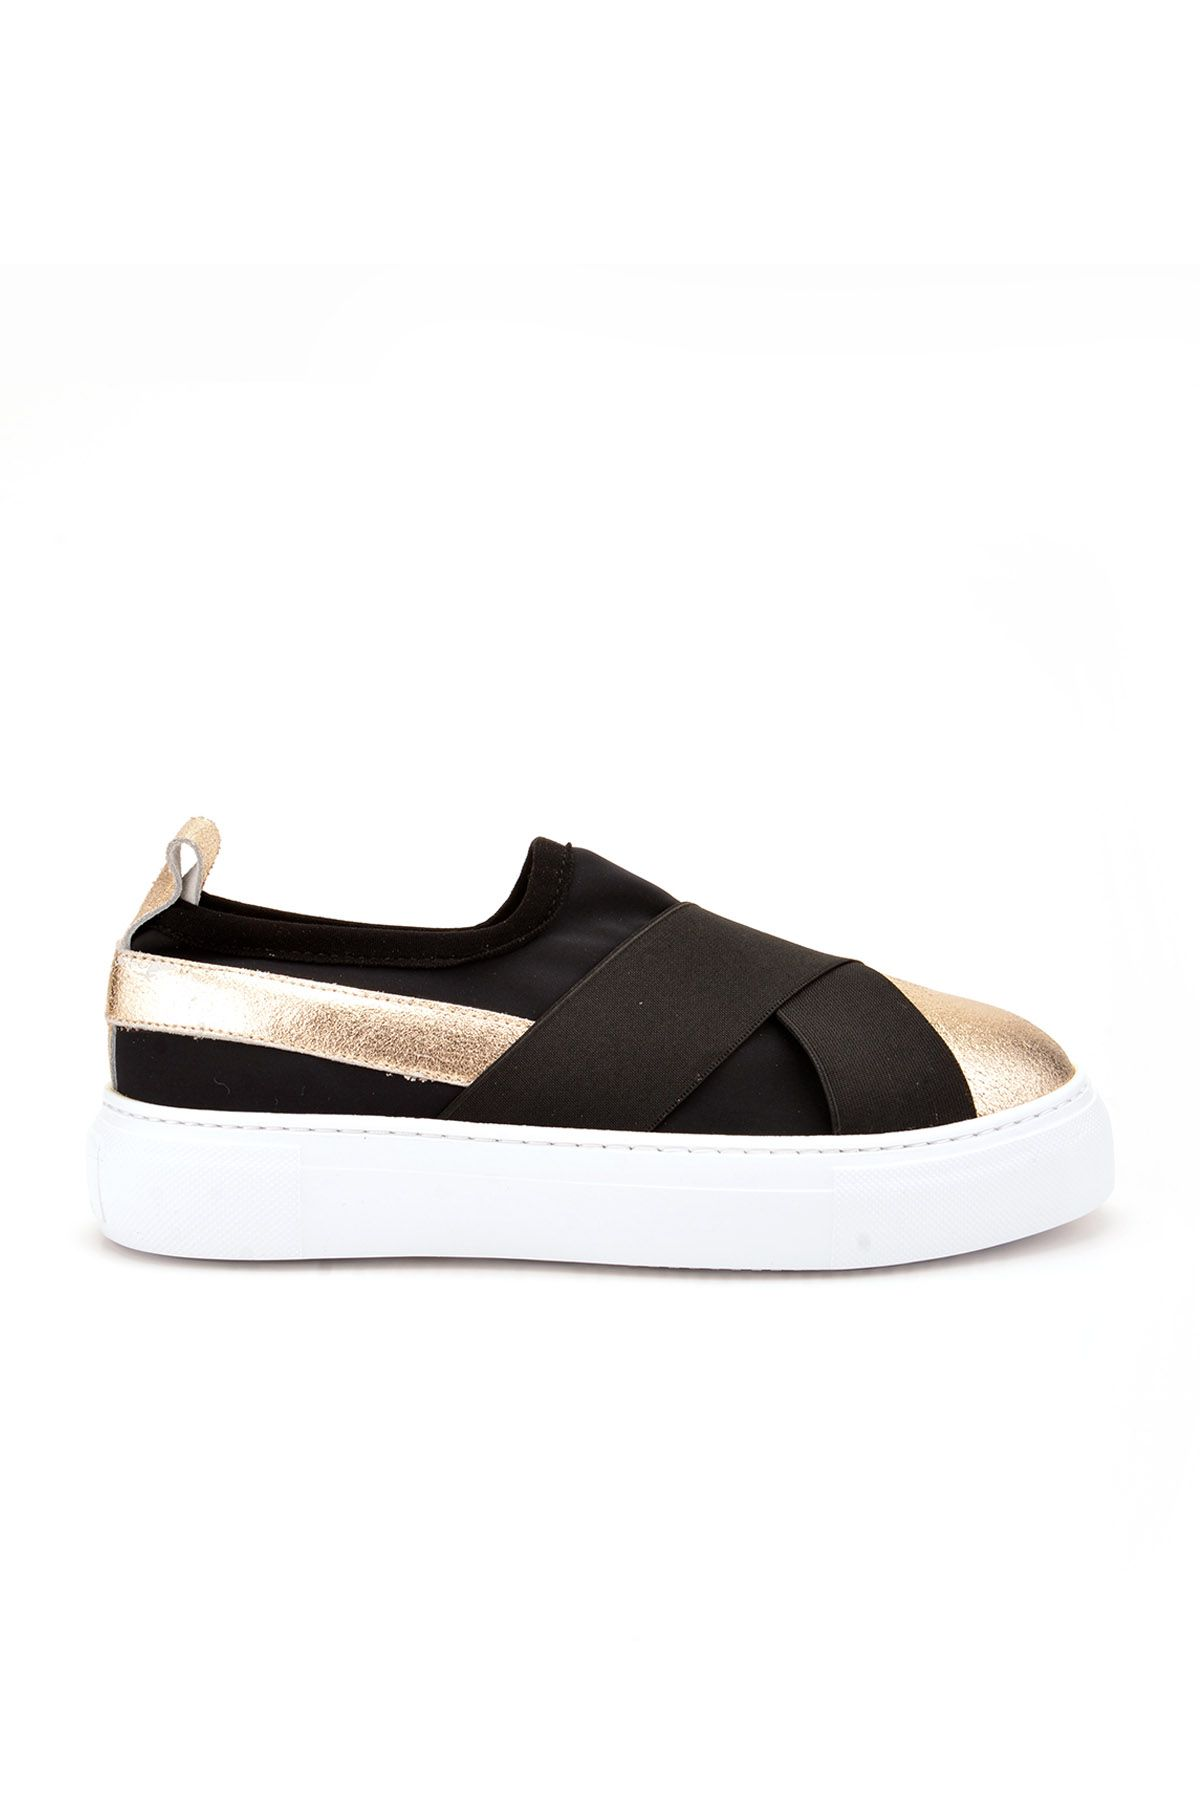 Pegia Voyage Casual Shoes From Genuine Leather REC-011 Golden